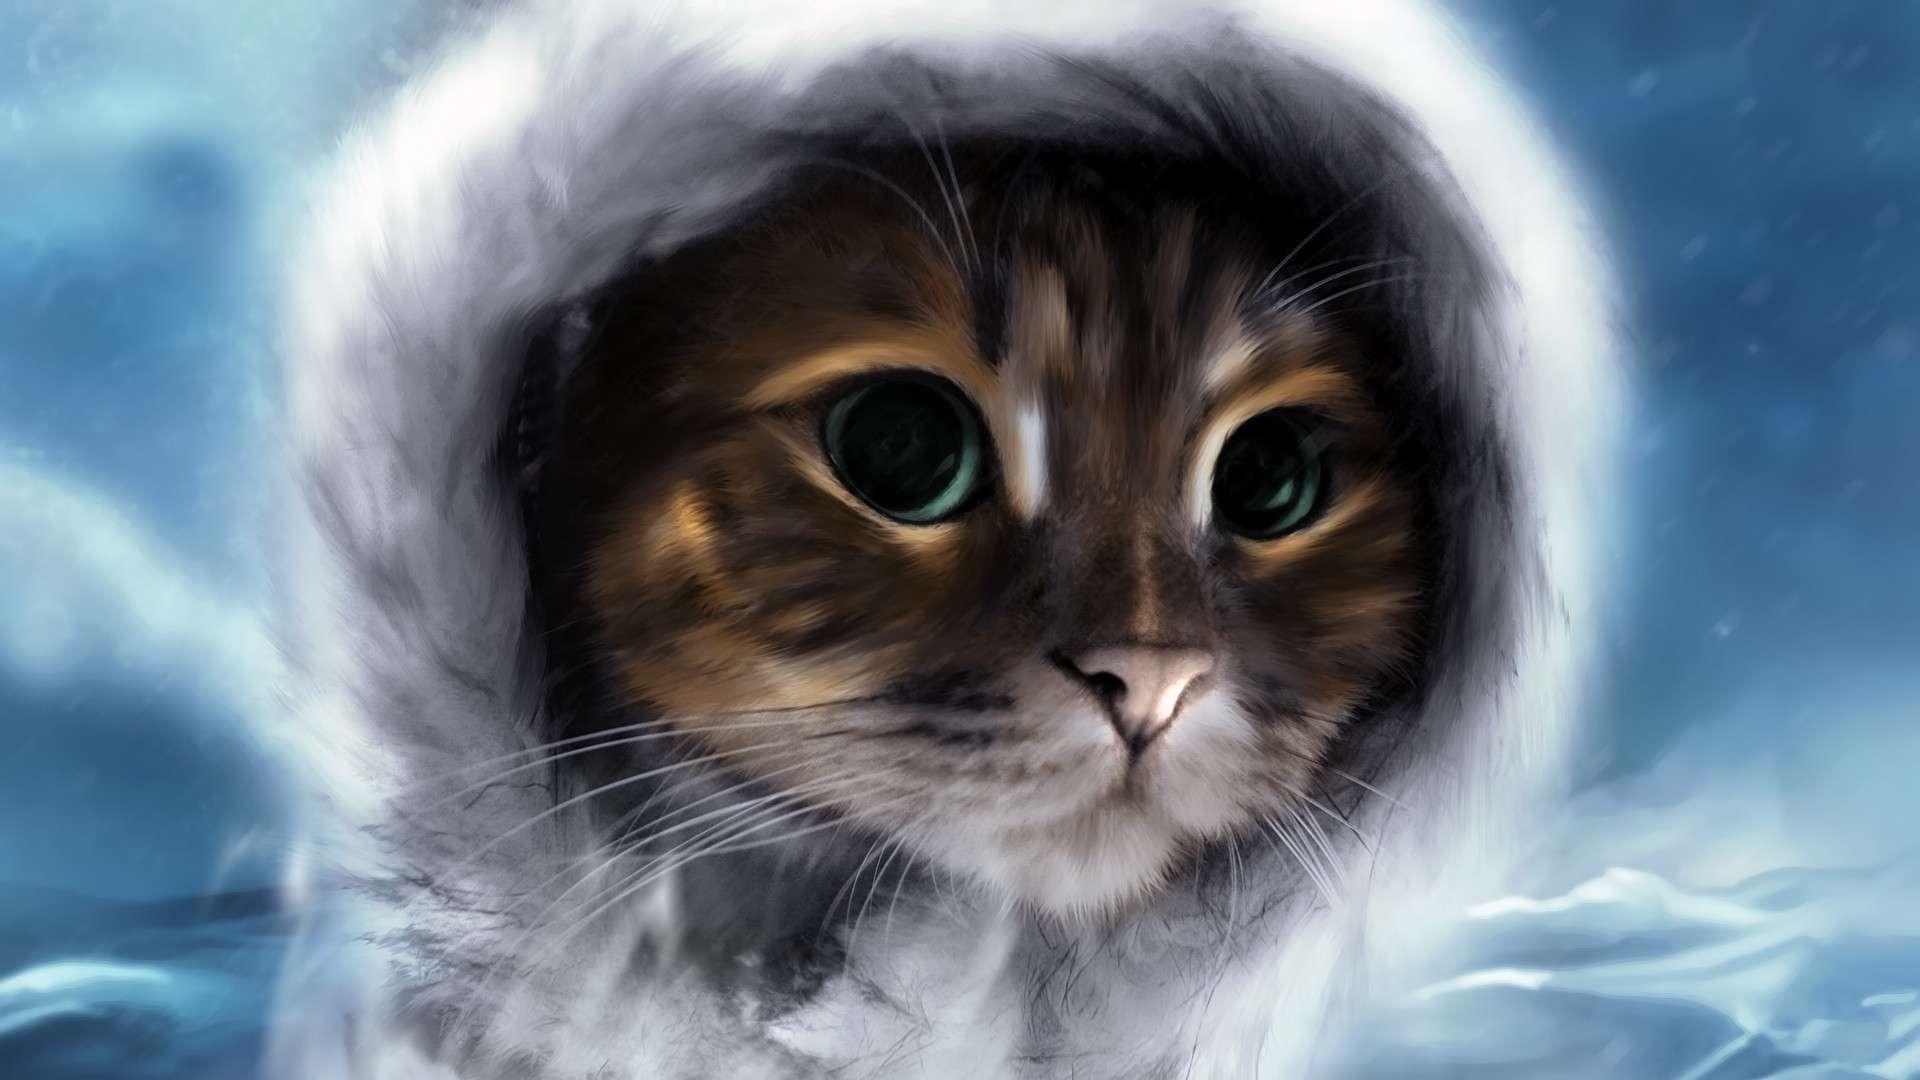 Cat Wallpaper 012